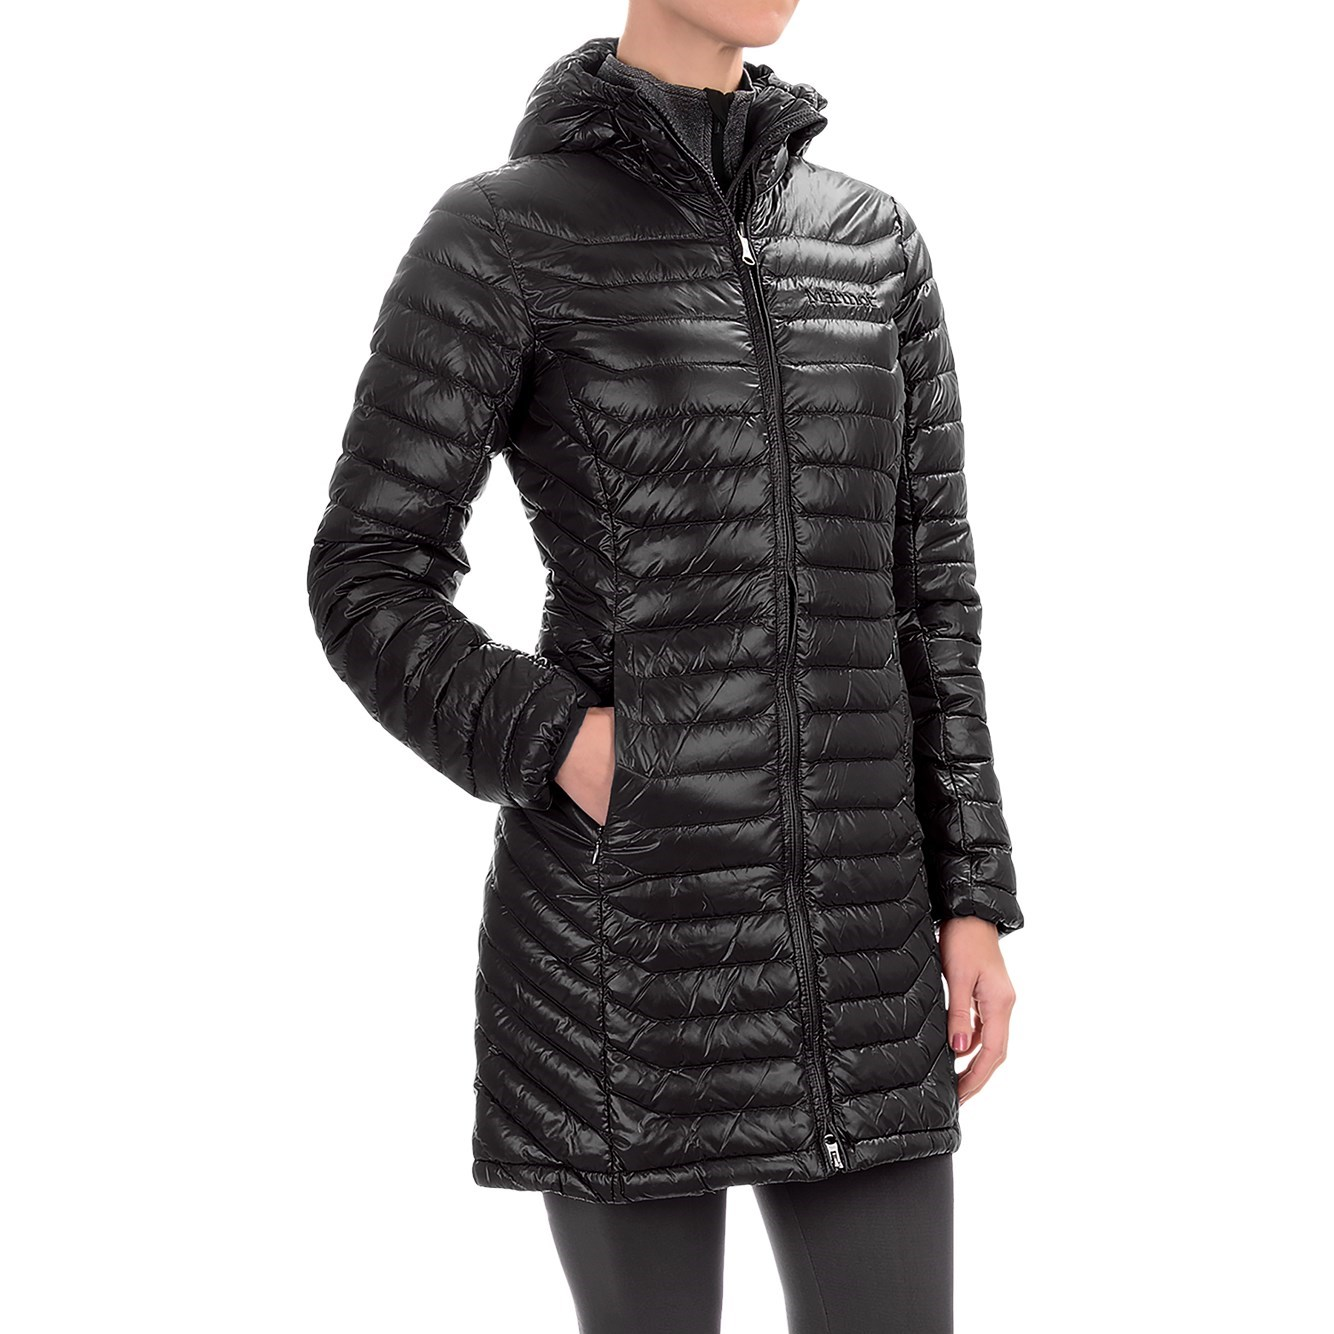 North Face Jacket Women >> Marmot Trina Down Jacket (For Women)